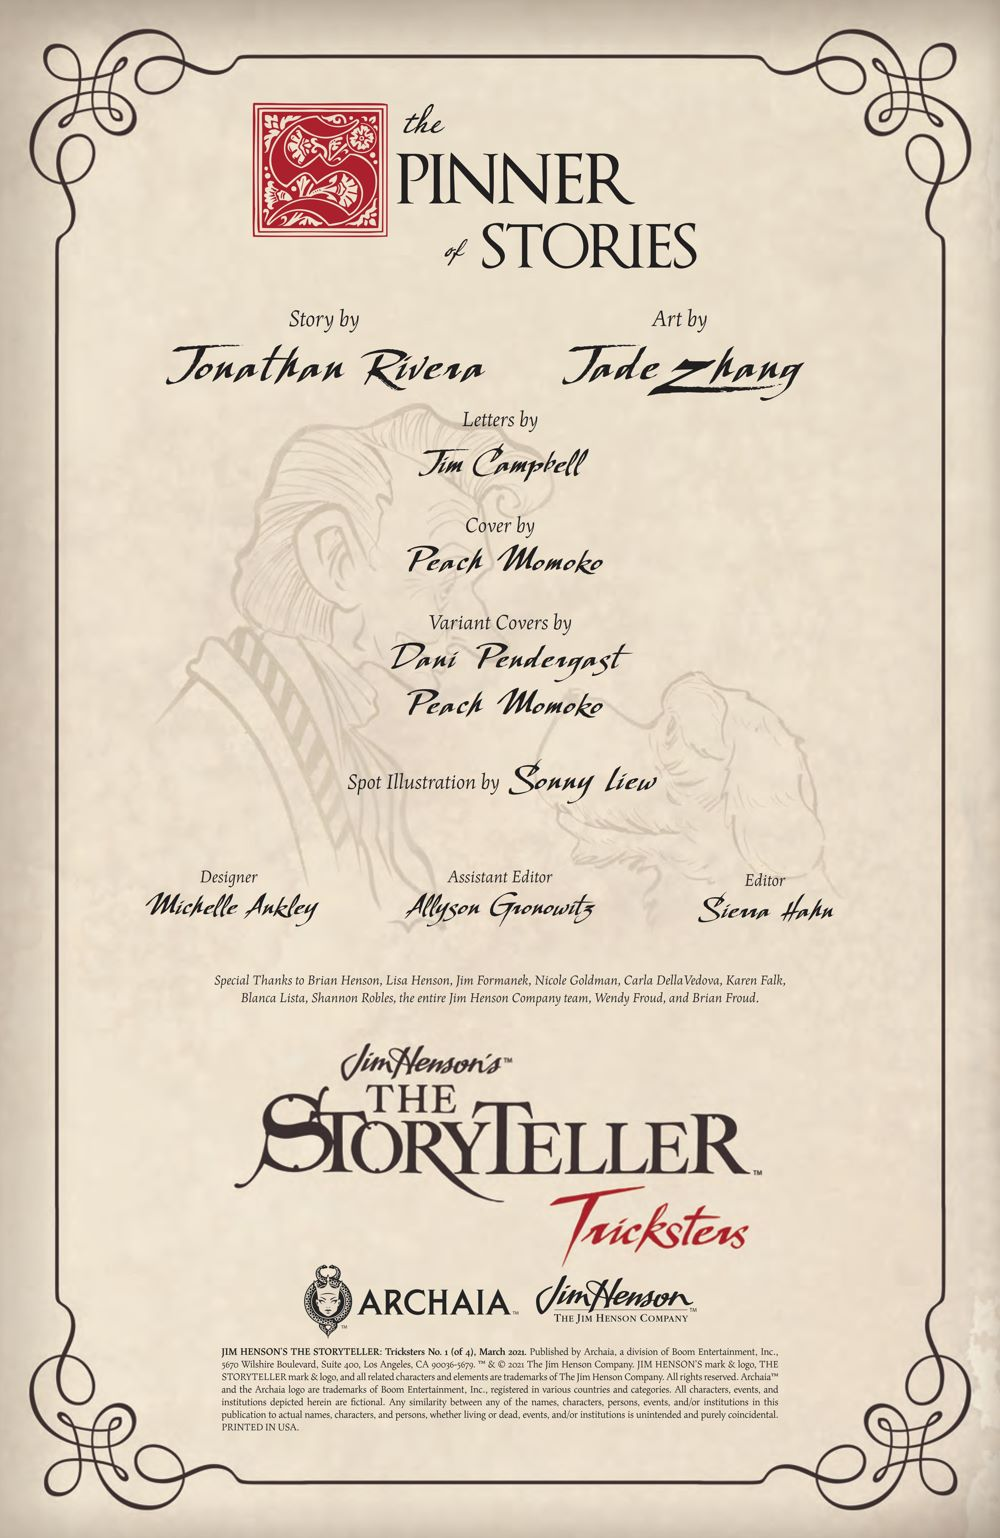 Storyteller_Tricksters_001_PRESS_2 ComicList Previews: JIM HENSON'S THE STORYTELLER TRICKSTERS #1 (OF 4)